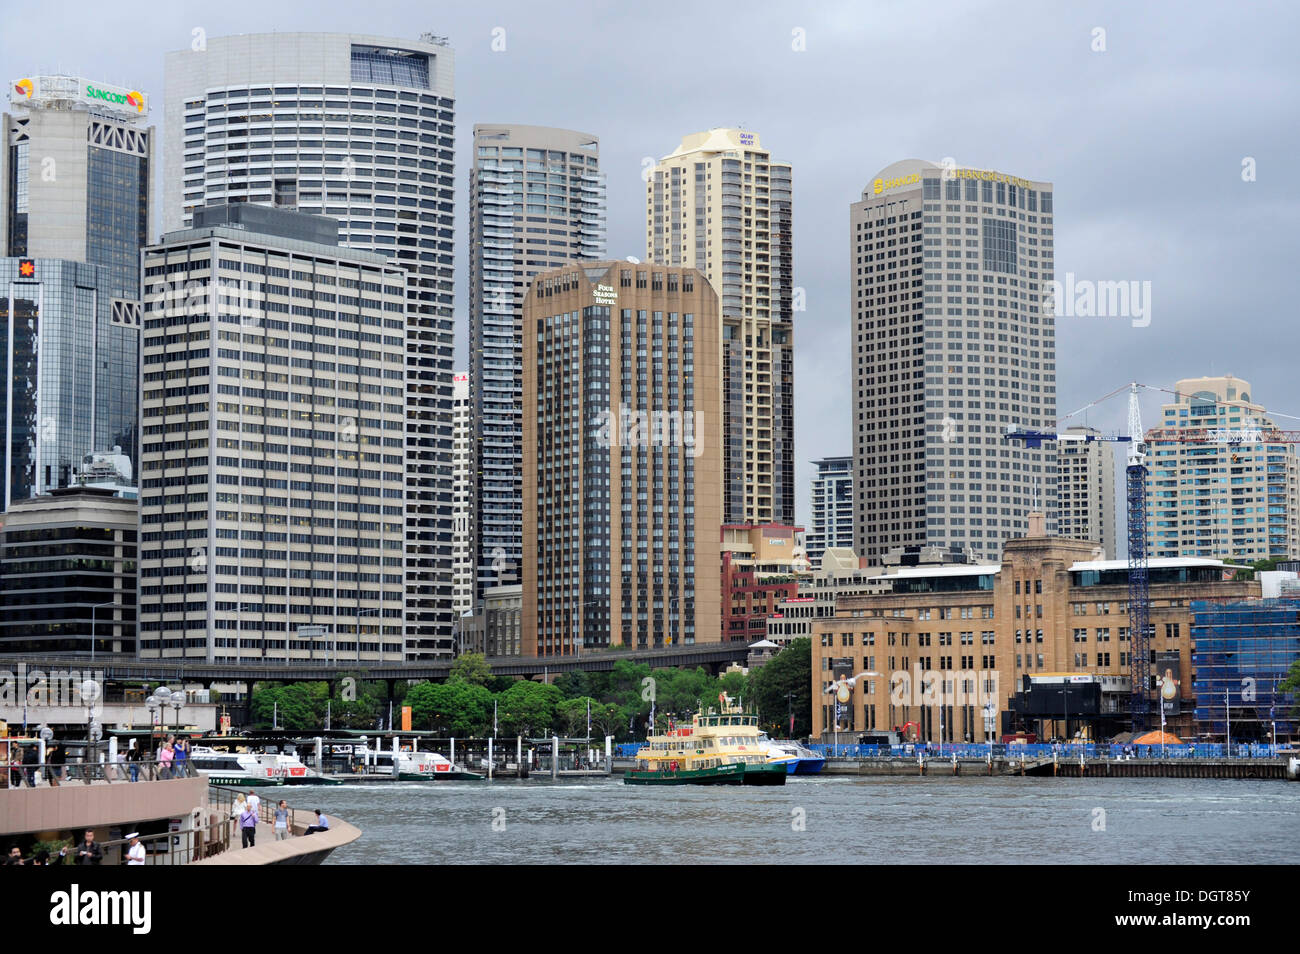 Circular Quay Ferry Wharf, Sydney Cove, Sydney Harbour, city centre at the rear with high-rise office buildings in the Central - Stock Image